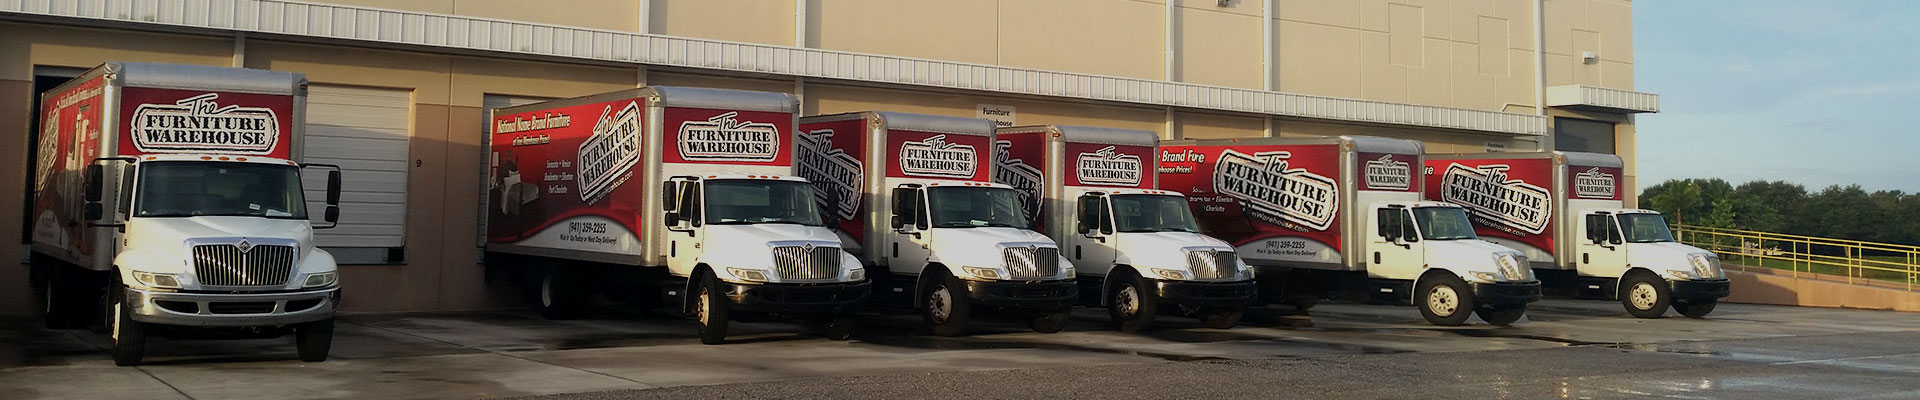 The Furniture Warehouse Trucks